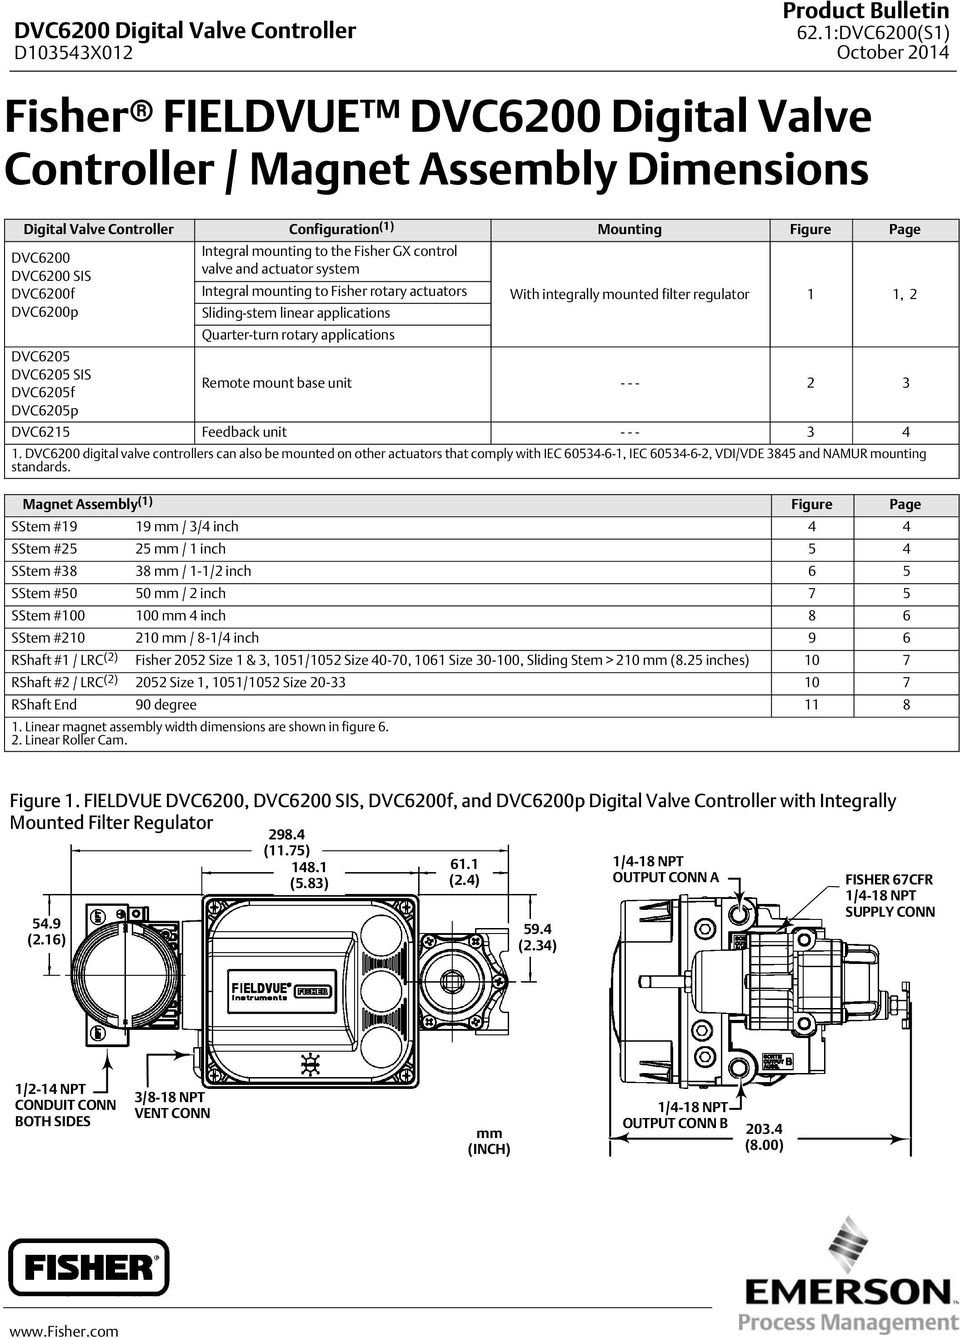 Fieldvue Dvc6200 Wiring Diagram -